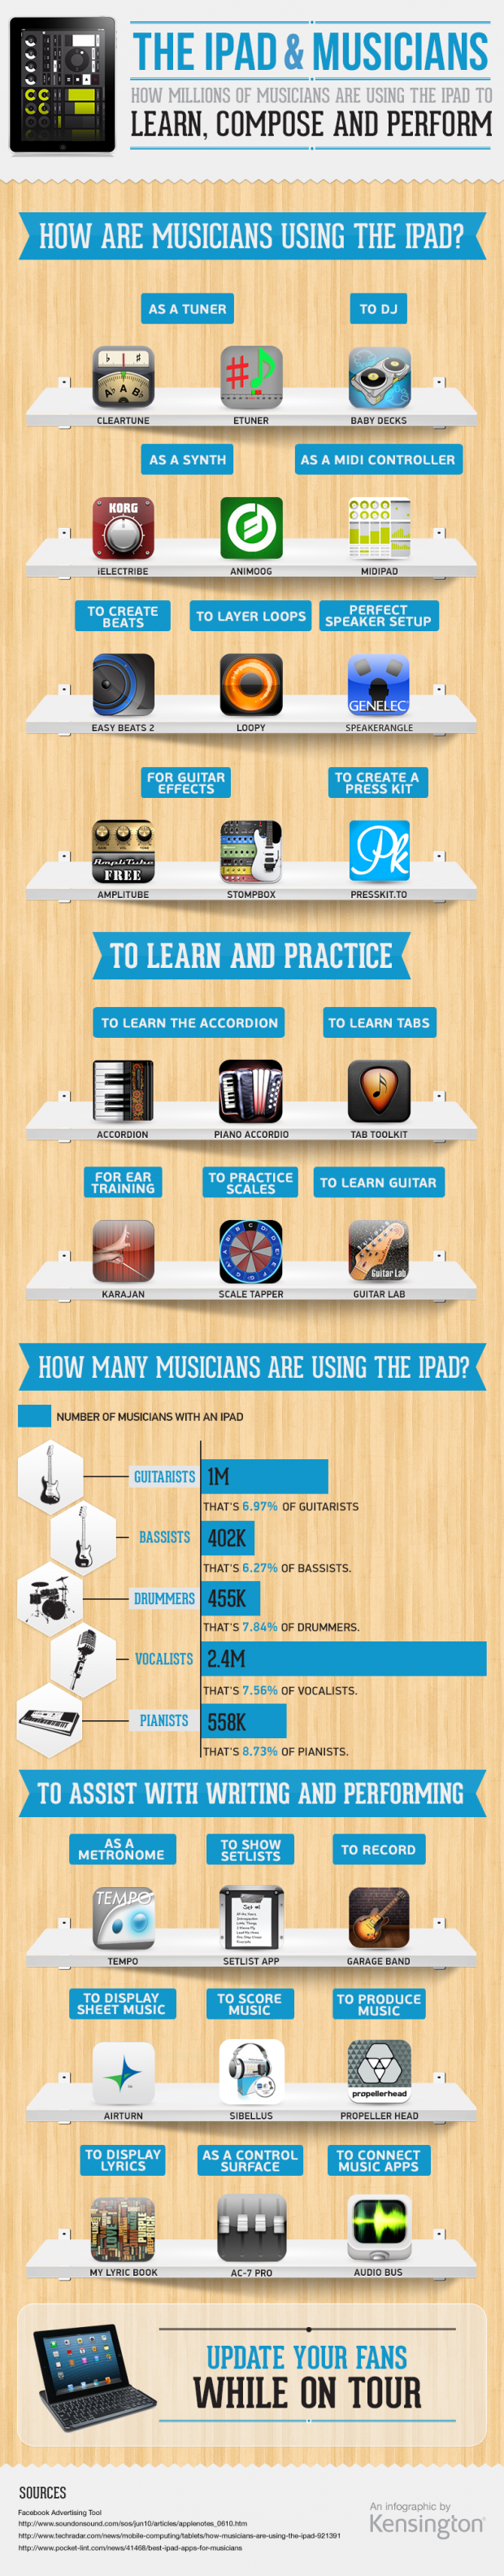 iPad-for-Musicians-Infographic